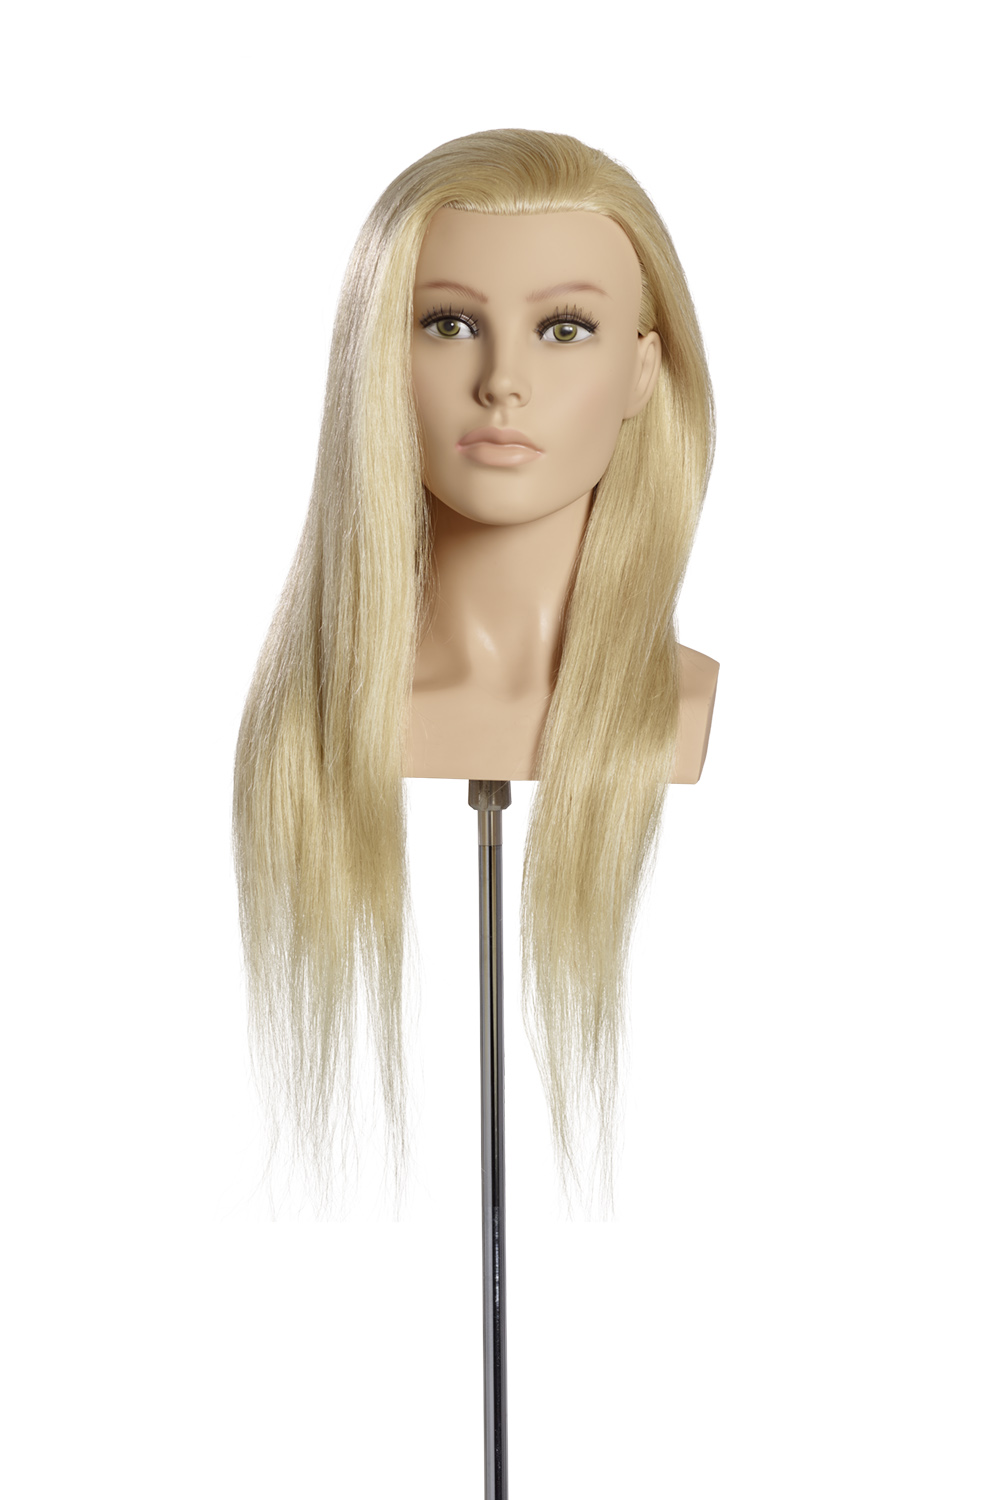 LICHIDARE DE STOC!!! Cap Manechin Competition LOUISA OMC, 60cm, Par Natural, Blond